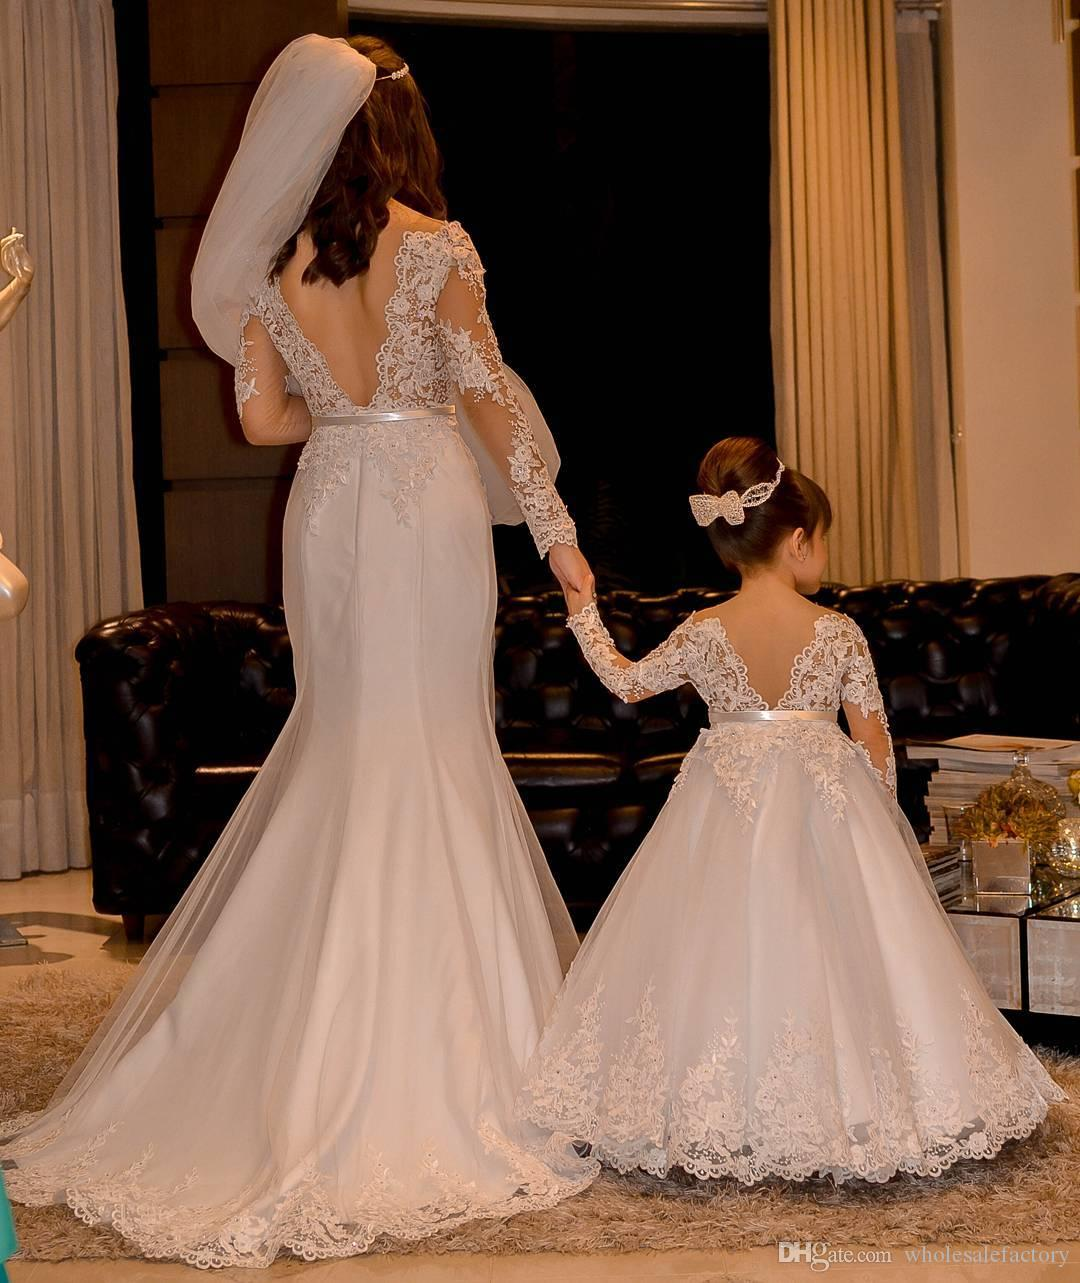 Vintage Long Sleeves Lace Flower Girl Dresses 2017 Jewel Neck Backless with Sash Mother Daughter Gowns Mini Me Party Dresses For Weddings